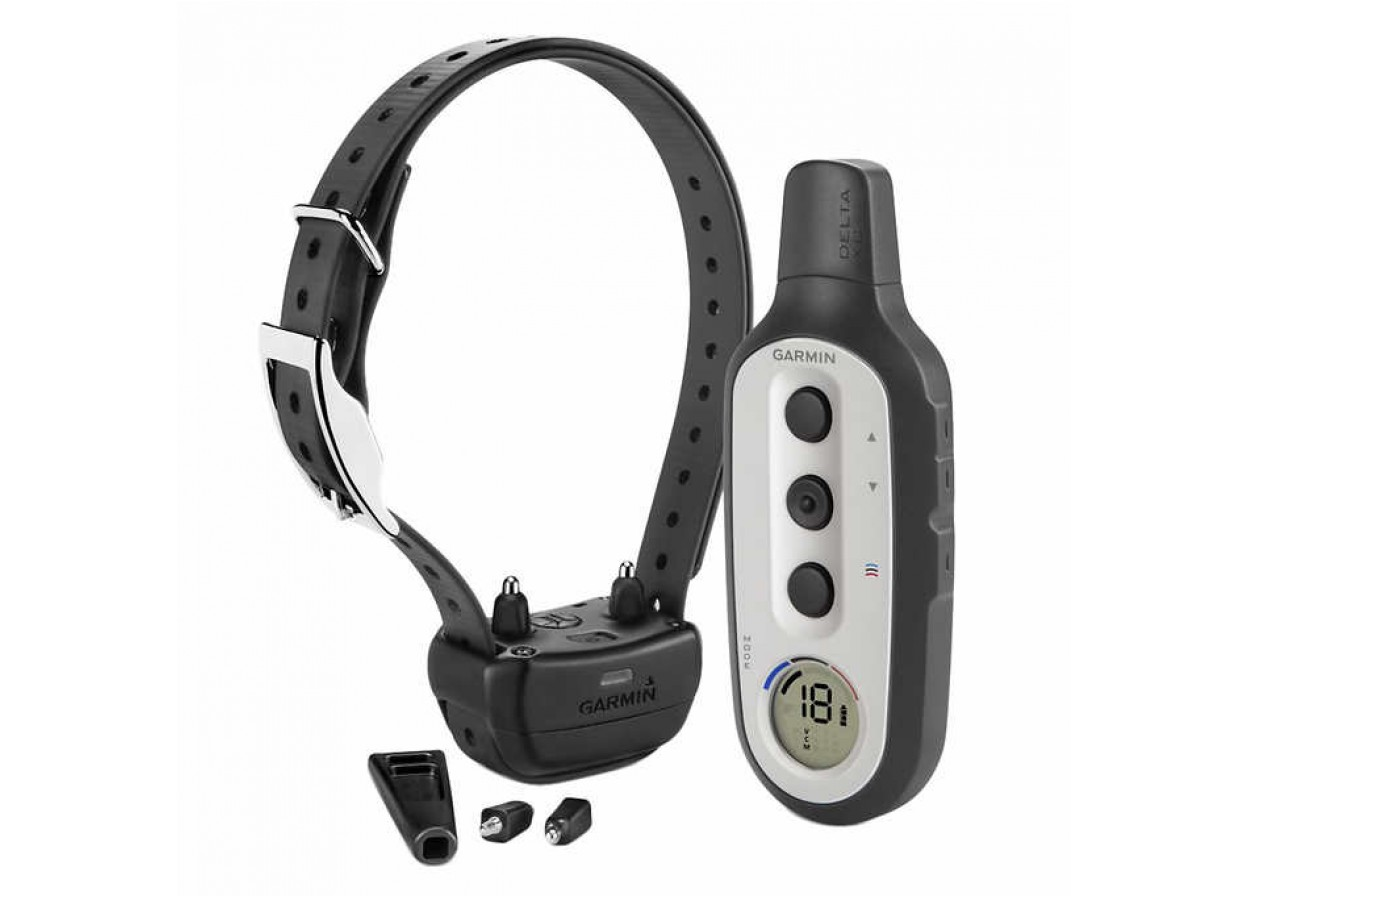 The Garmin Delta XC has long and short contact points for better reception.